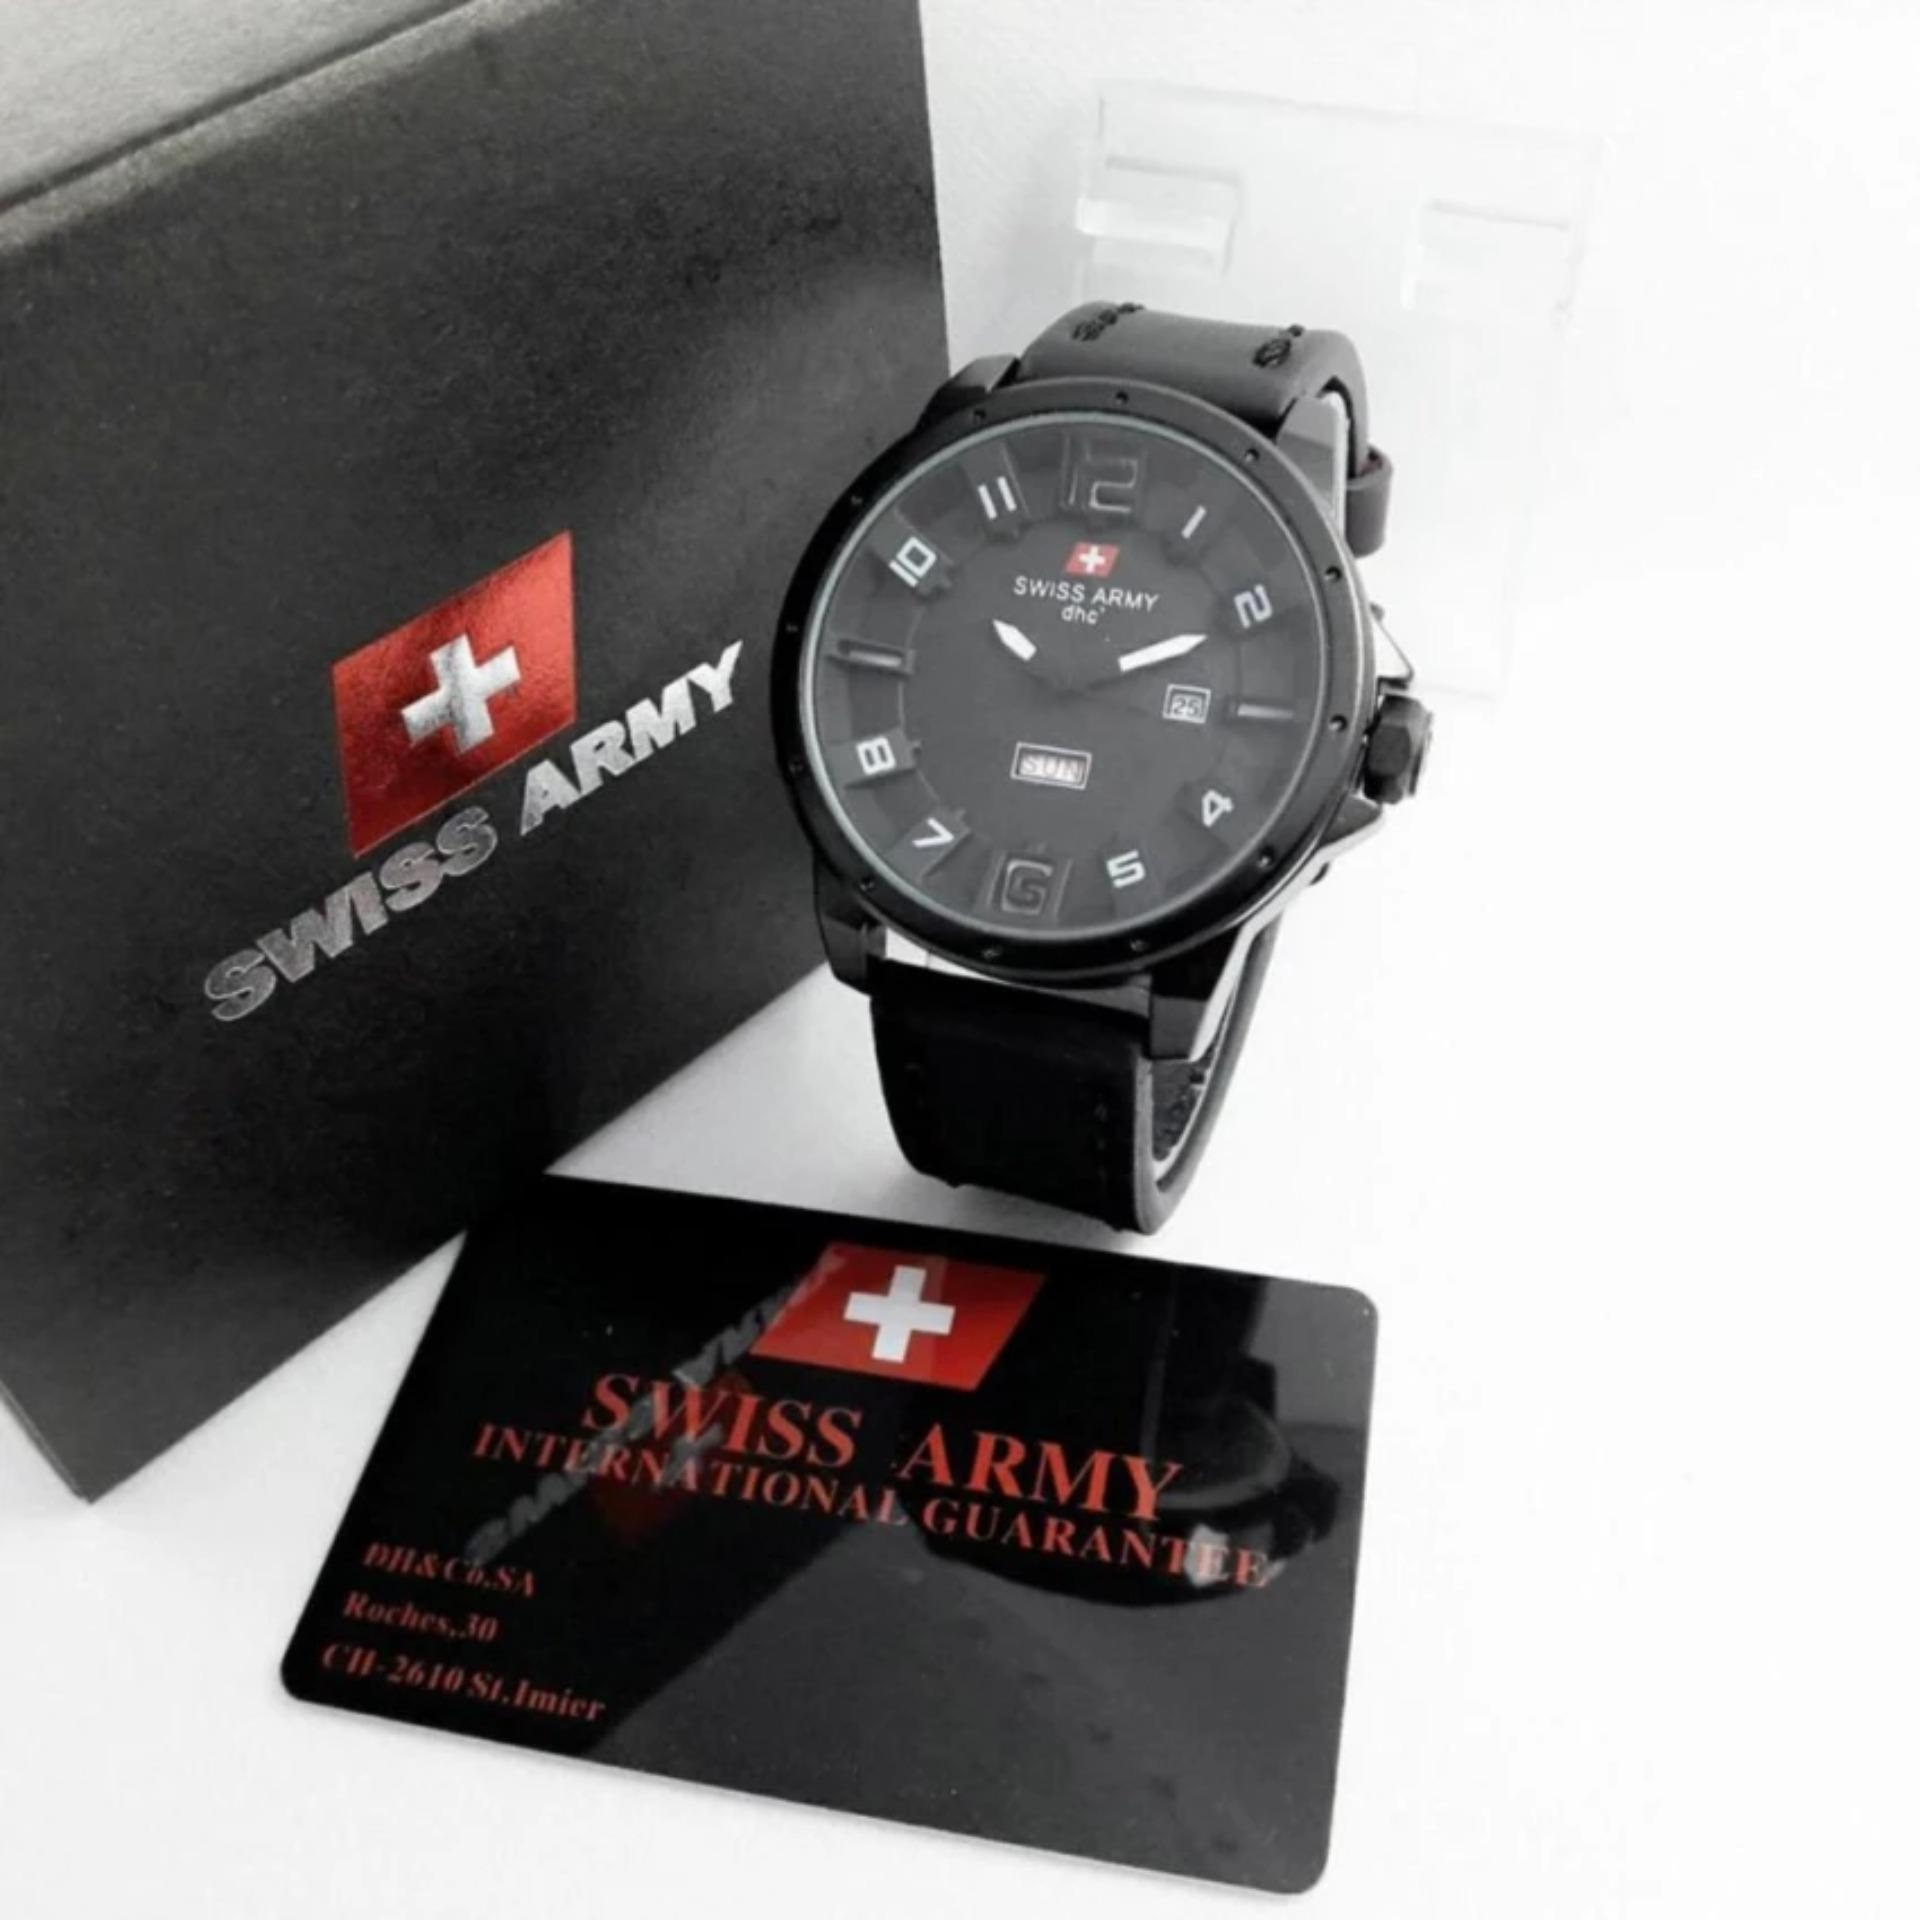 Swiss Army Infantry Full Set Jam Tangan Pria Sa7070 Jj Daftar Oddskull Lbs Brown Stainless Steel